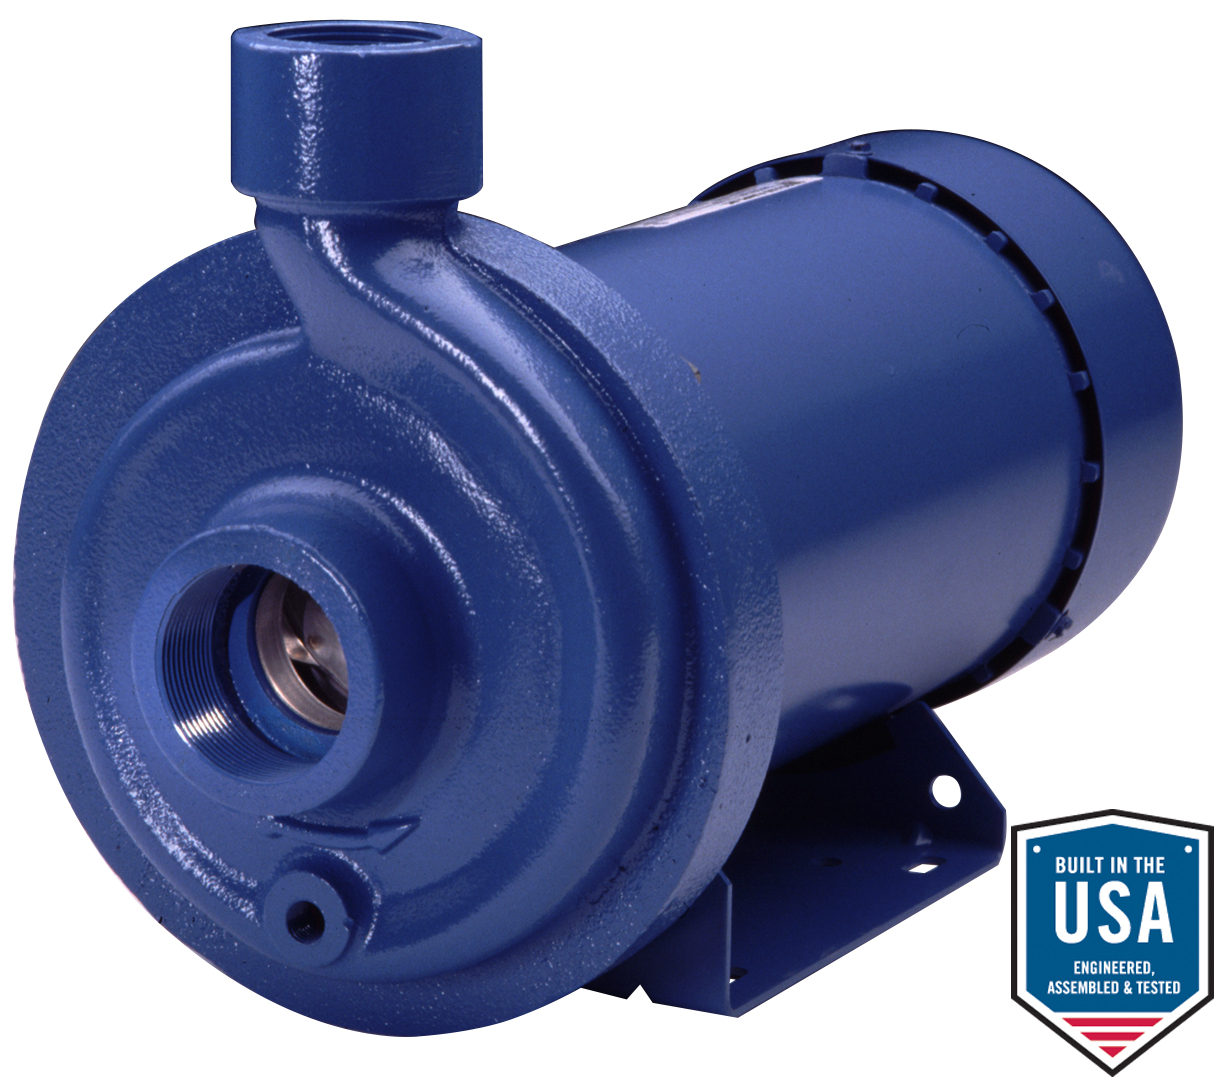 MCC Cast Iron Pumps with 316 Stainless Steel Impellers